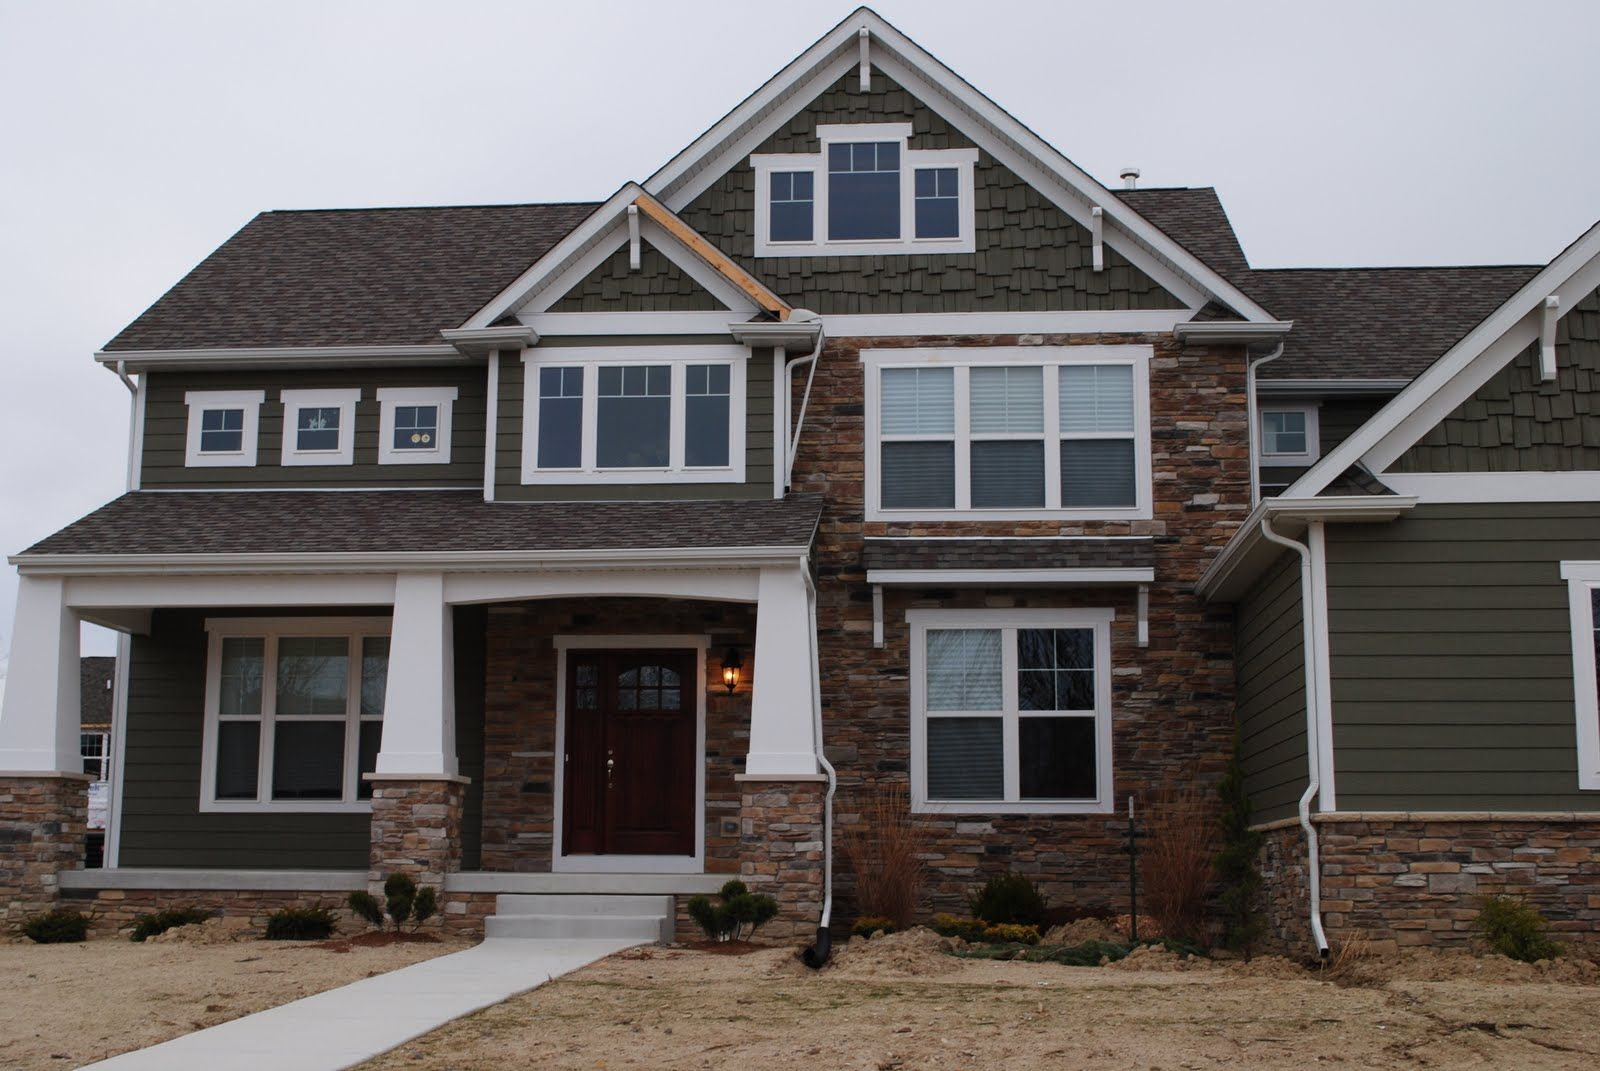 Cape Coddin In Indiana Stone Brick Or Both Outside House Colors House Siding House Exterior